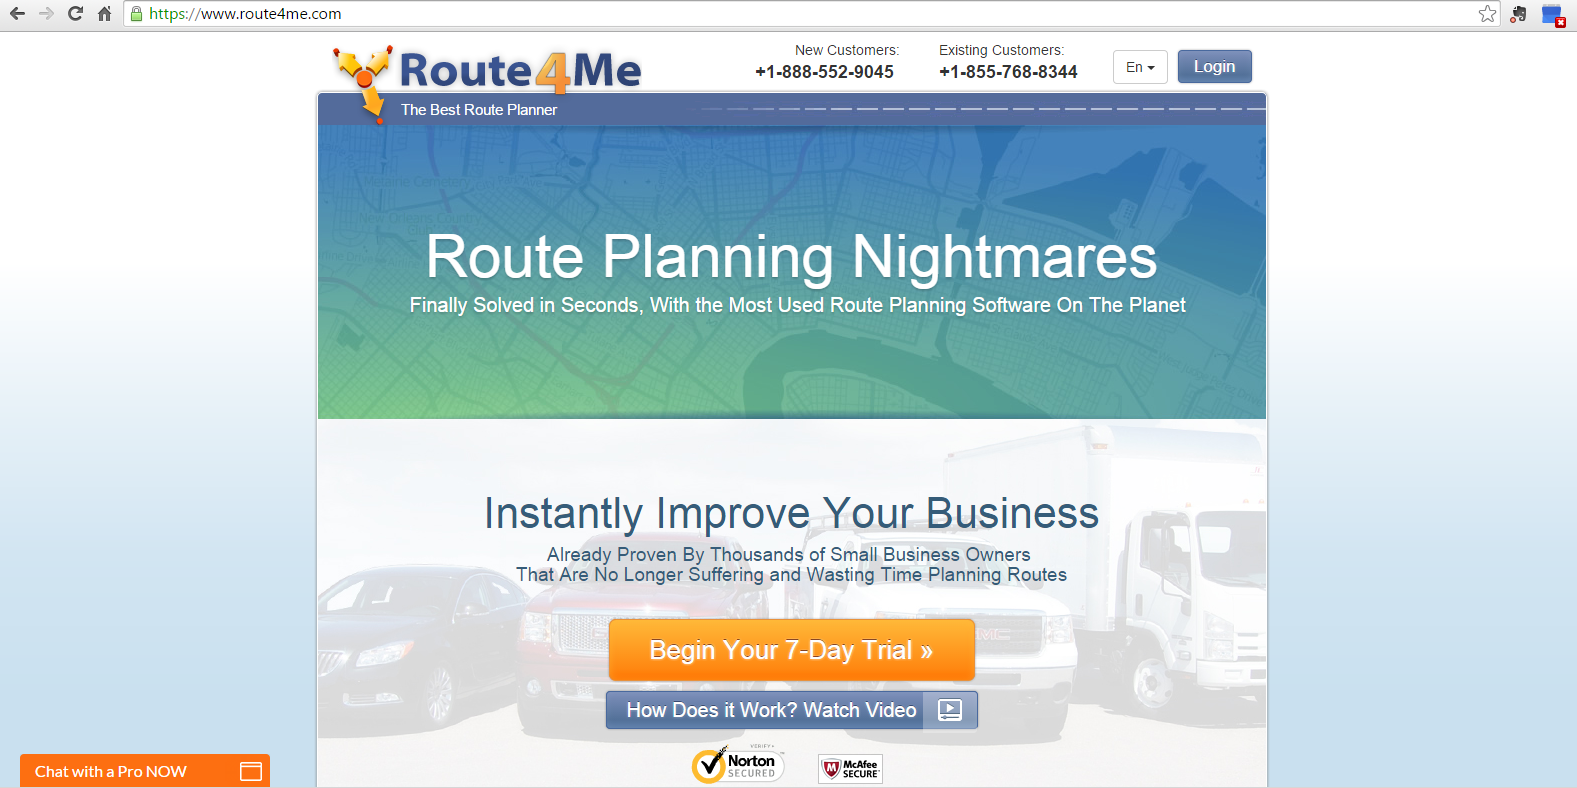 Route4Me's dynamic routing makes web subscriptions easy and convenient